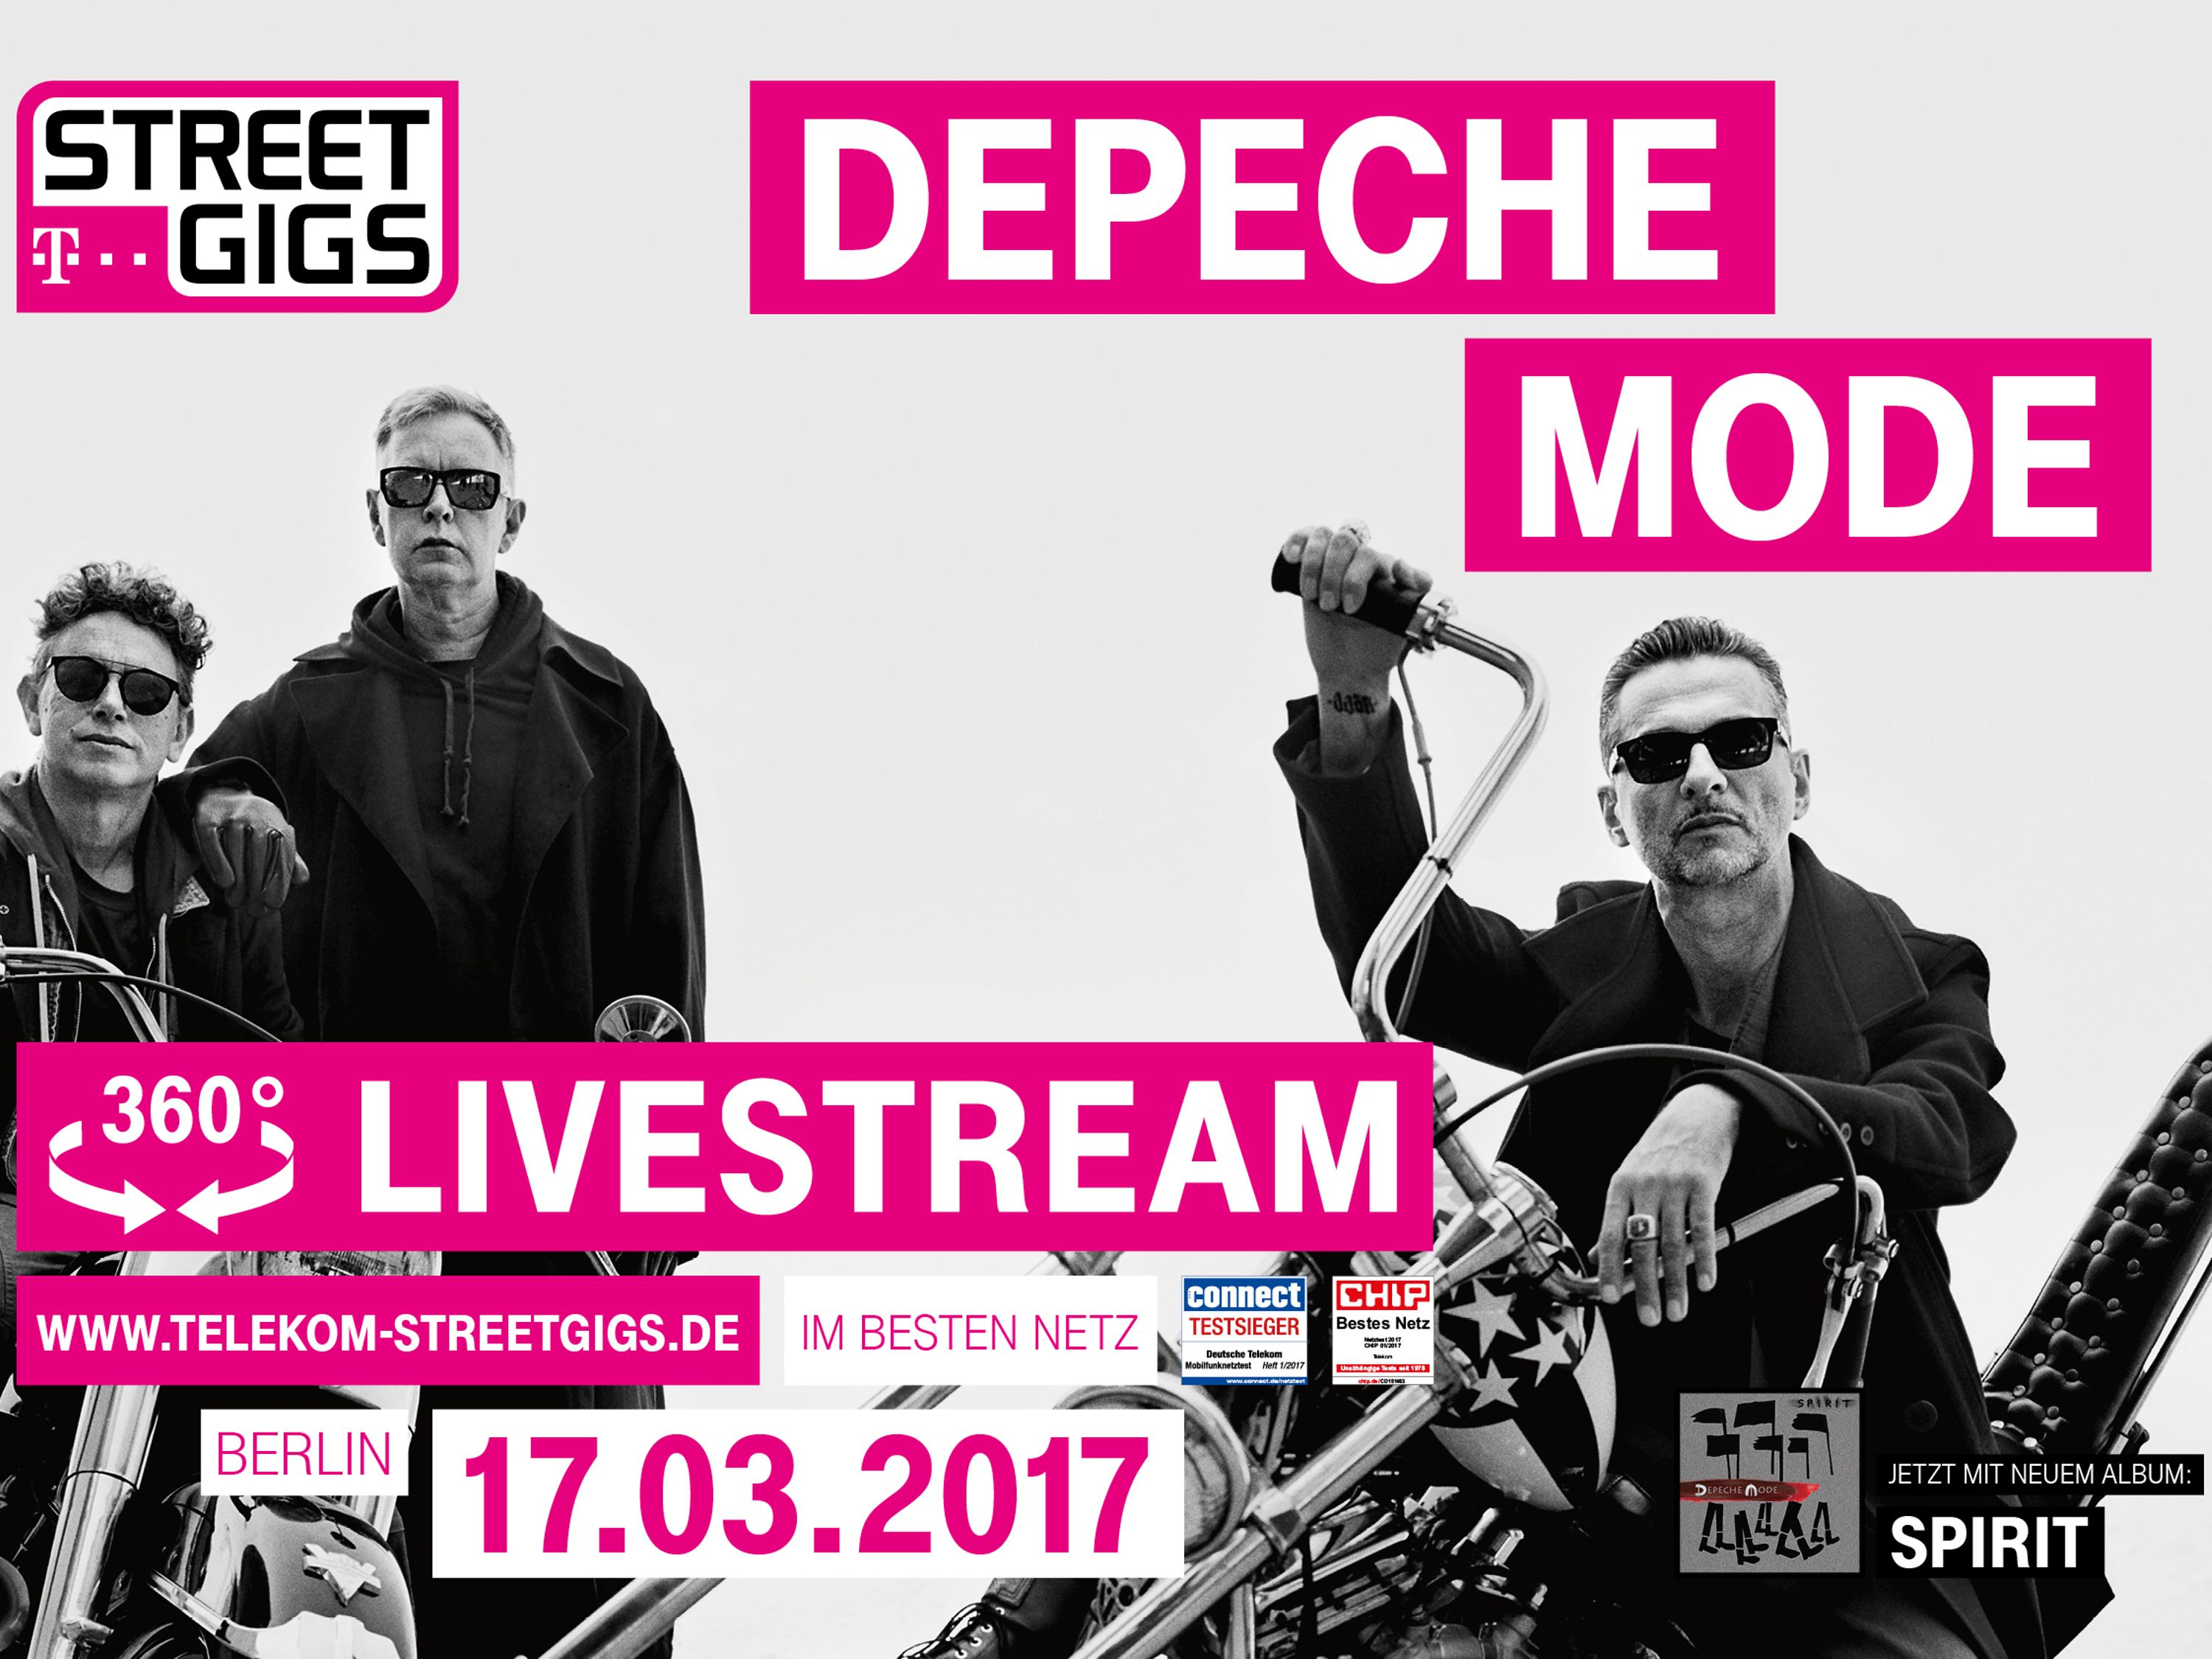 Telekom presents Depeche Mode